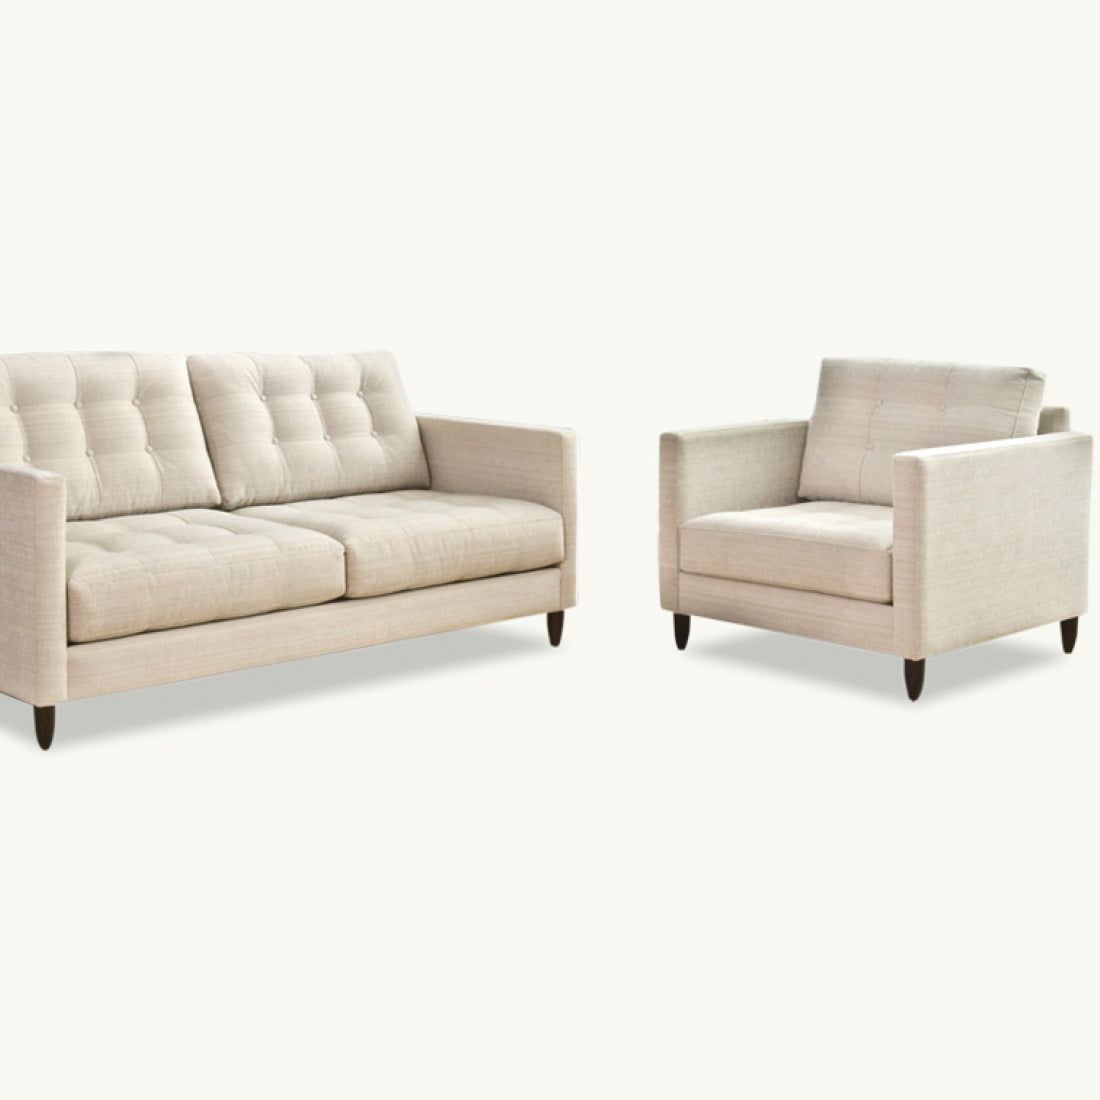 "James 85"" Sofa   Made-to-Order"